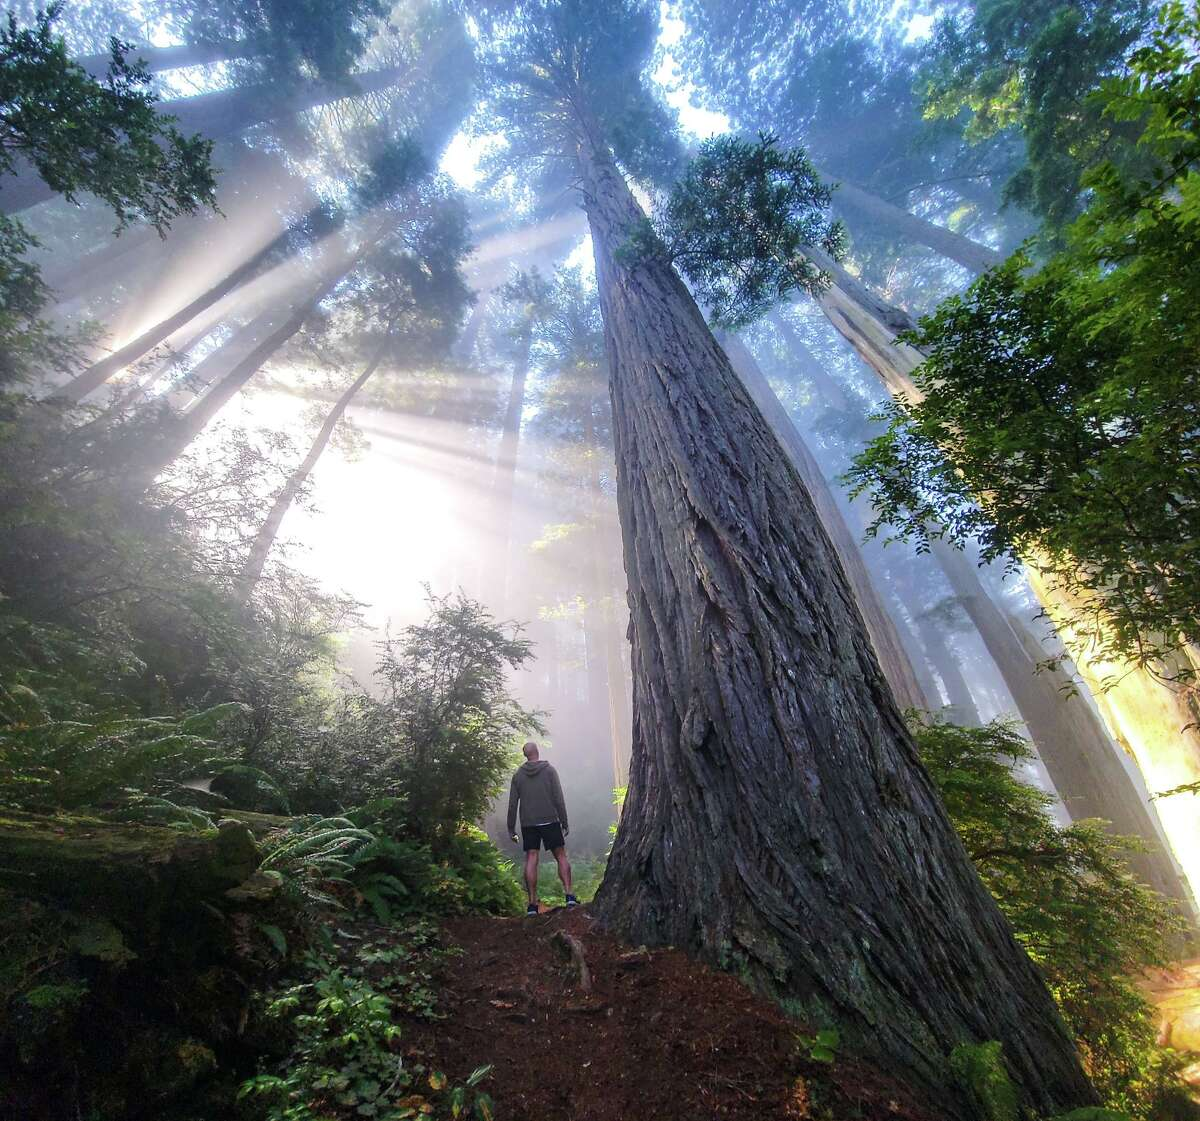 Nate Berg admires the light streaming through the trees on the Damnation Creek Trail in Redwood National Park.